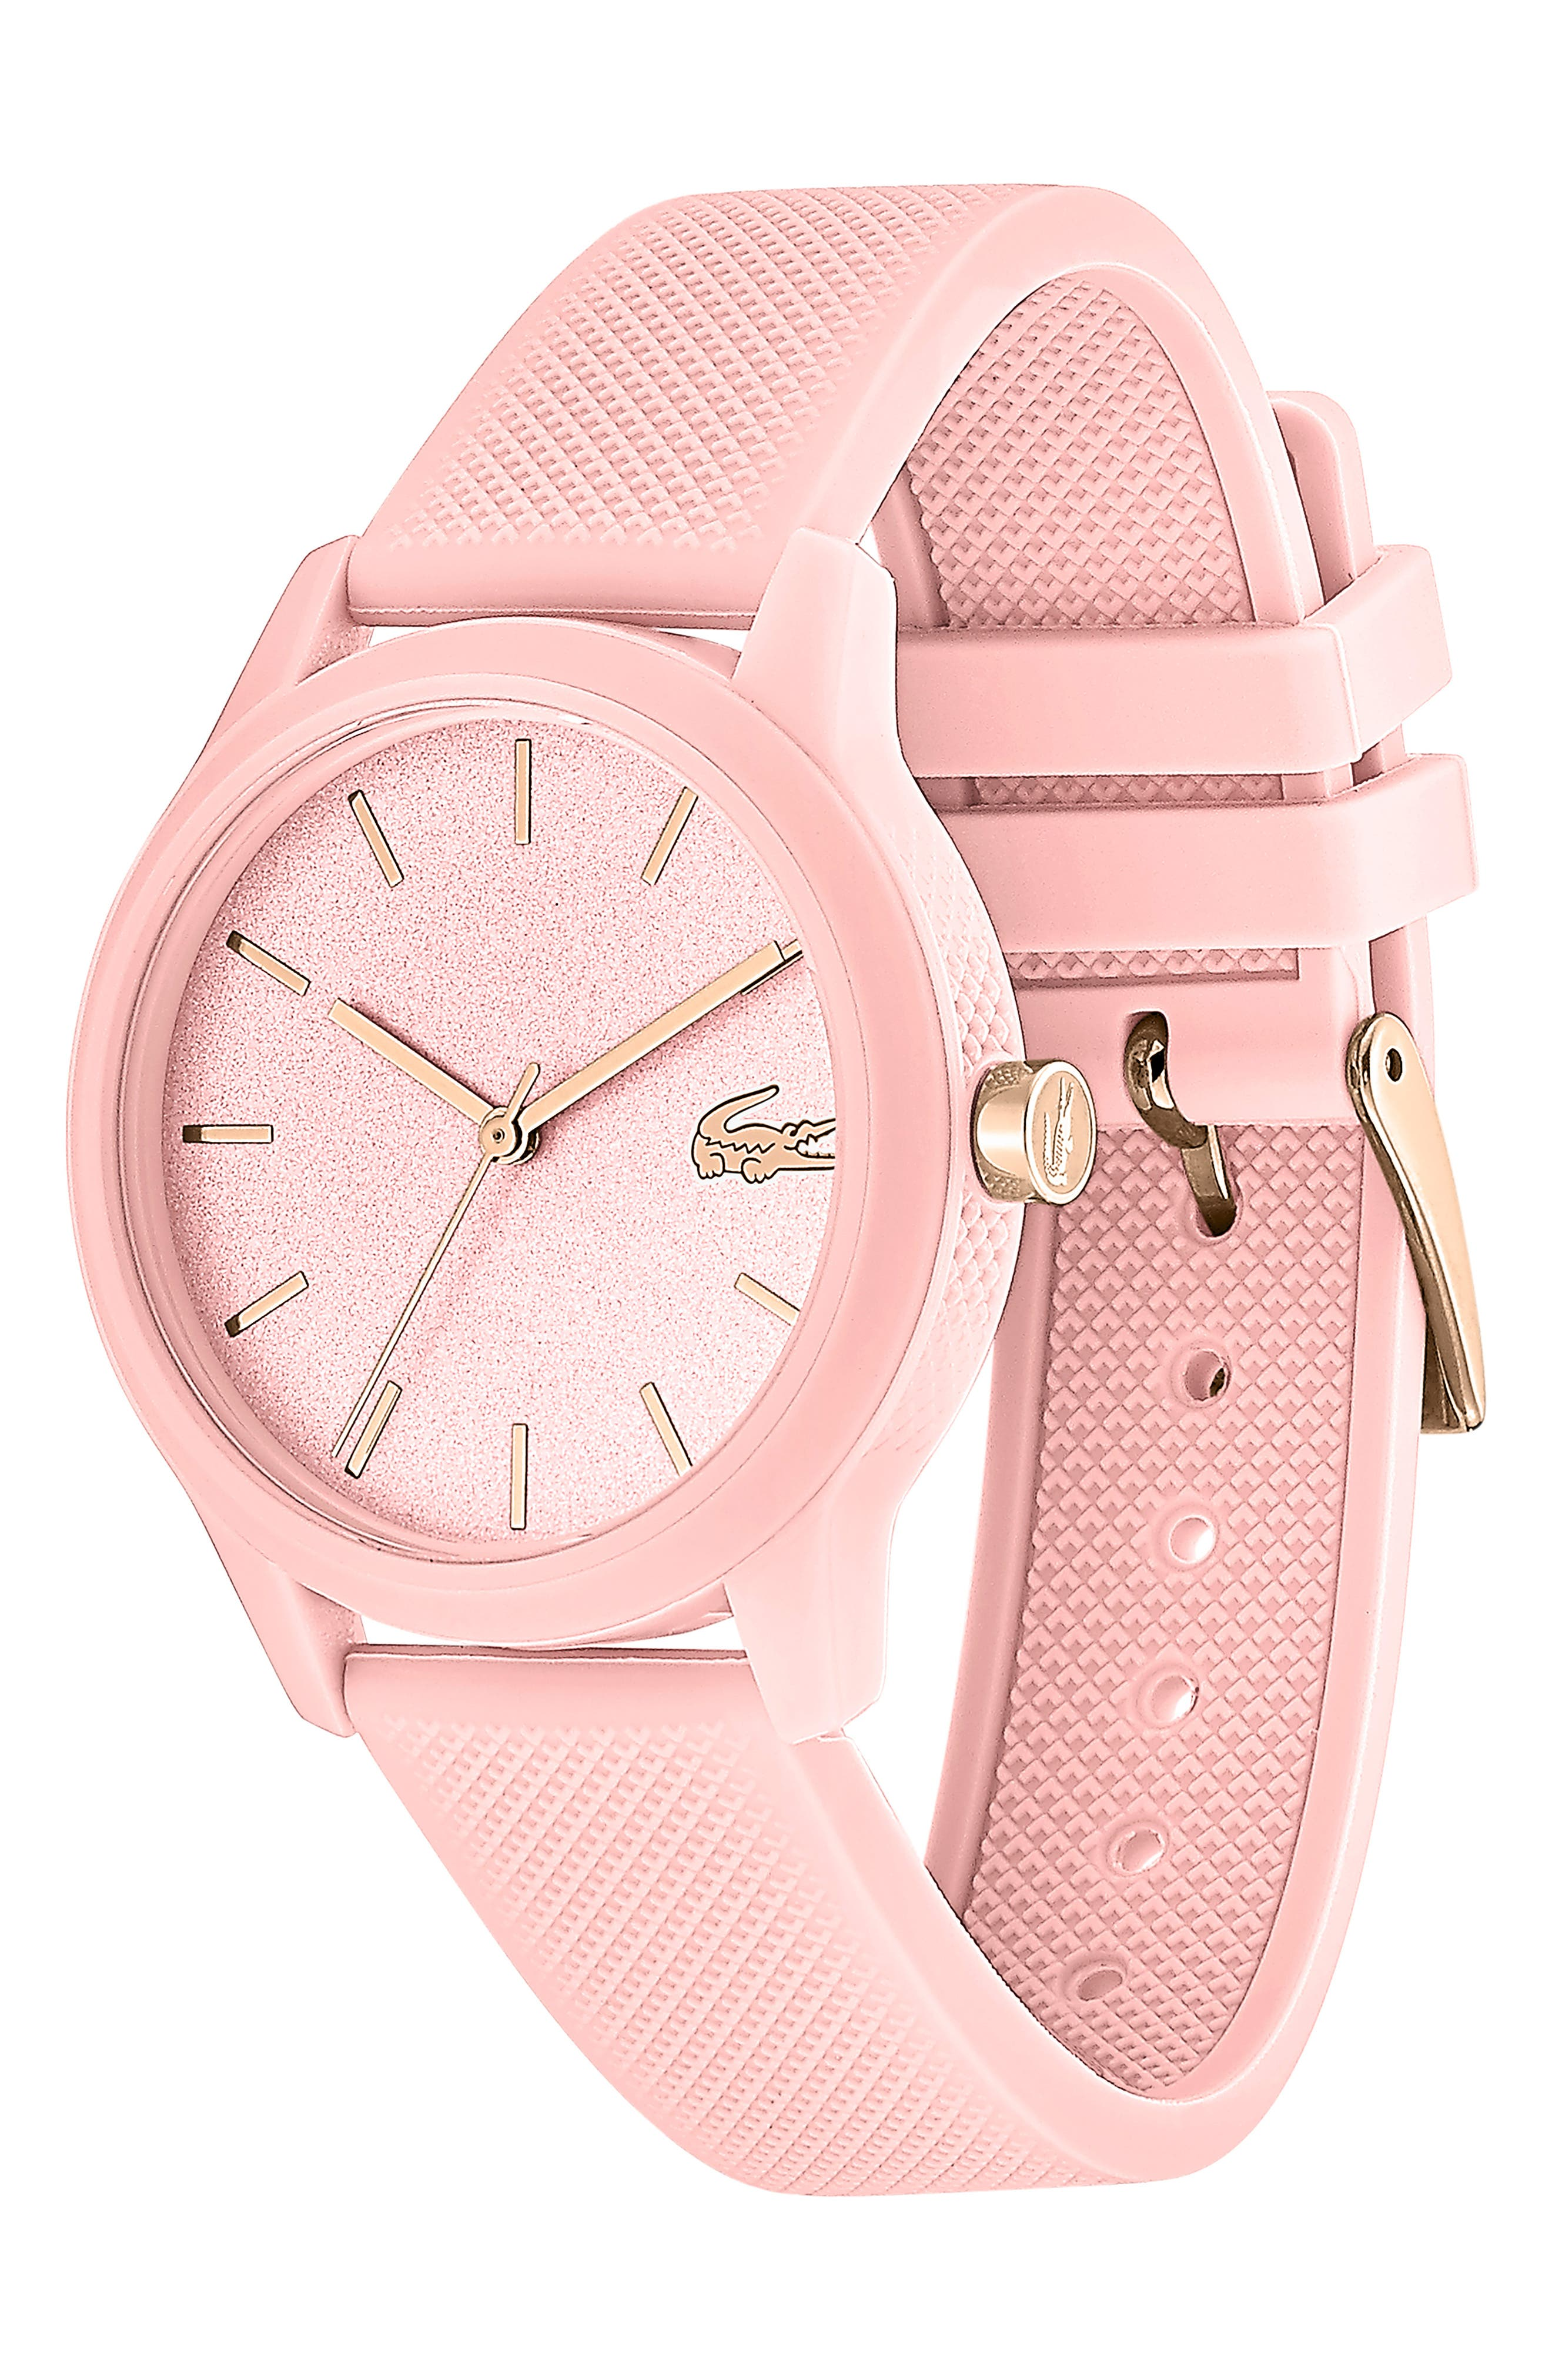 LACOSTE, 12.12 Silicone Strap Watch, 36mm, Alternate thumbnail 3, color, PINK